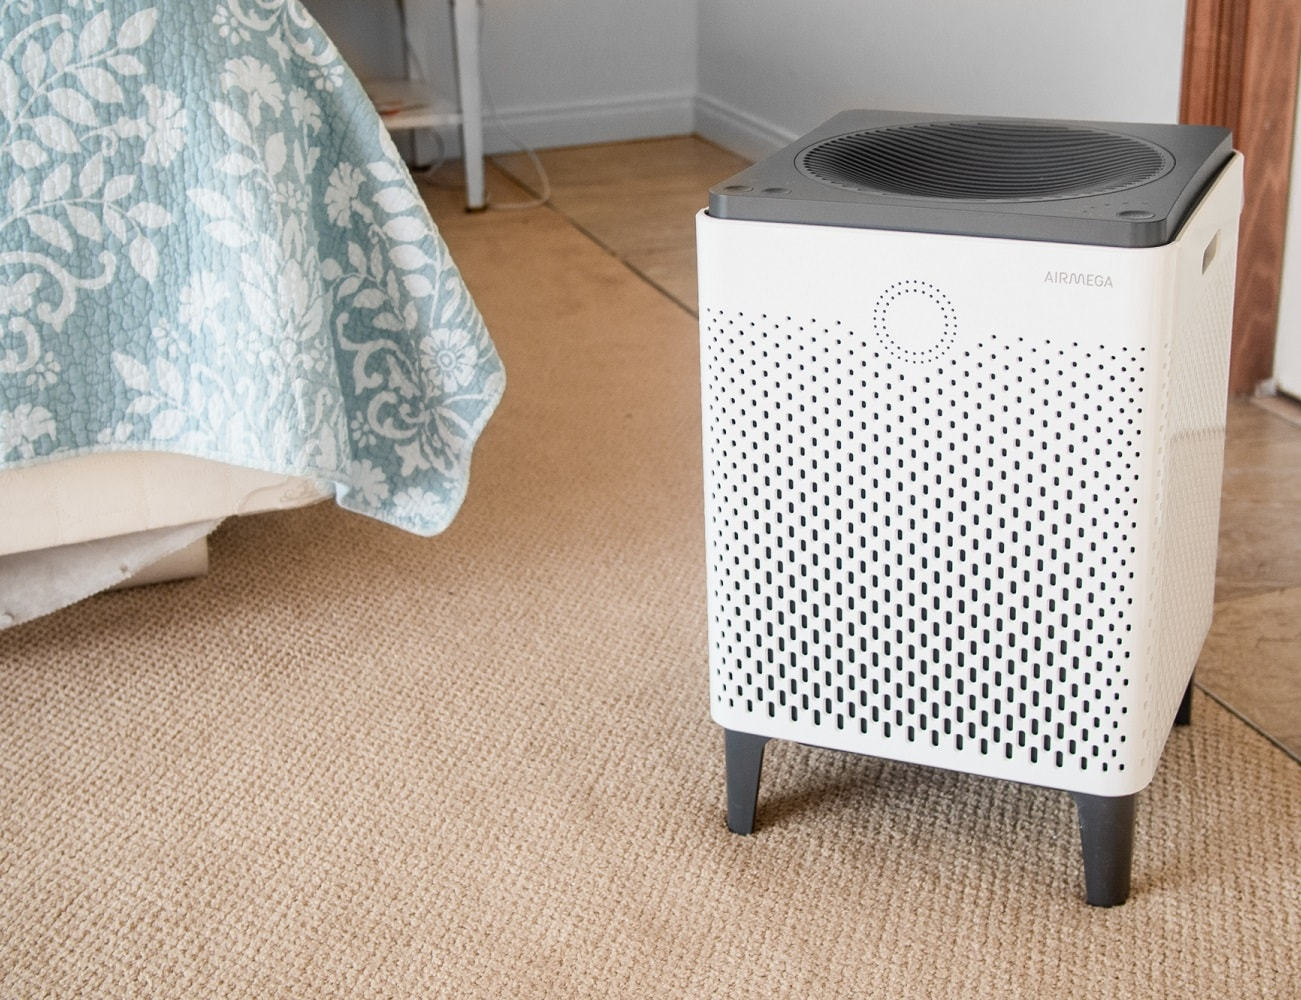 Airmega – The Smart Air Purifier